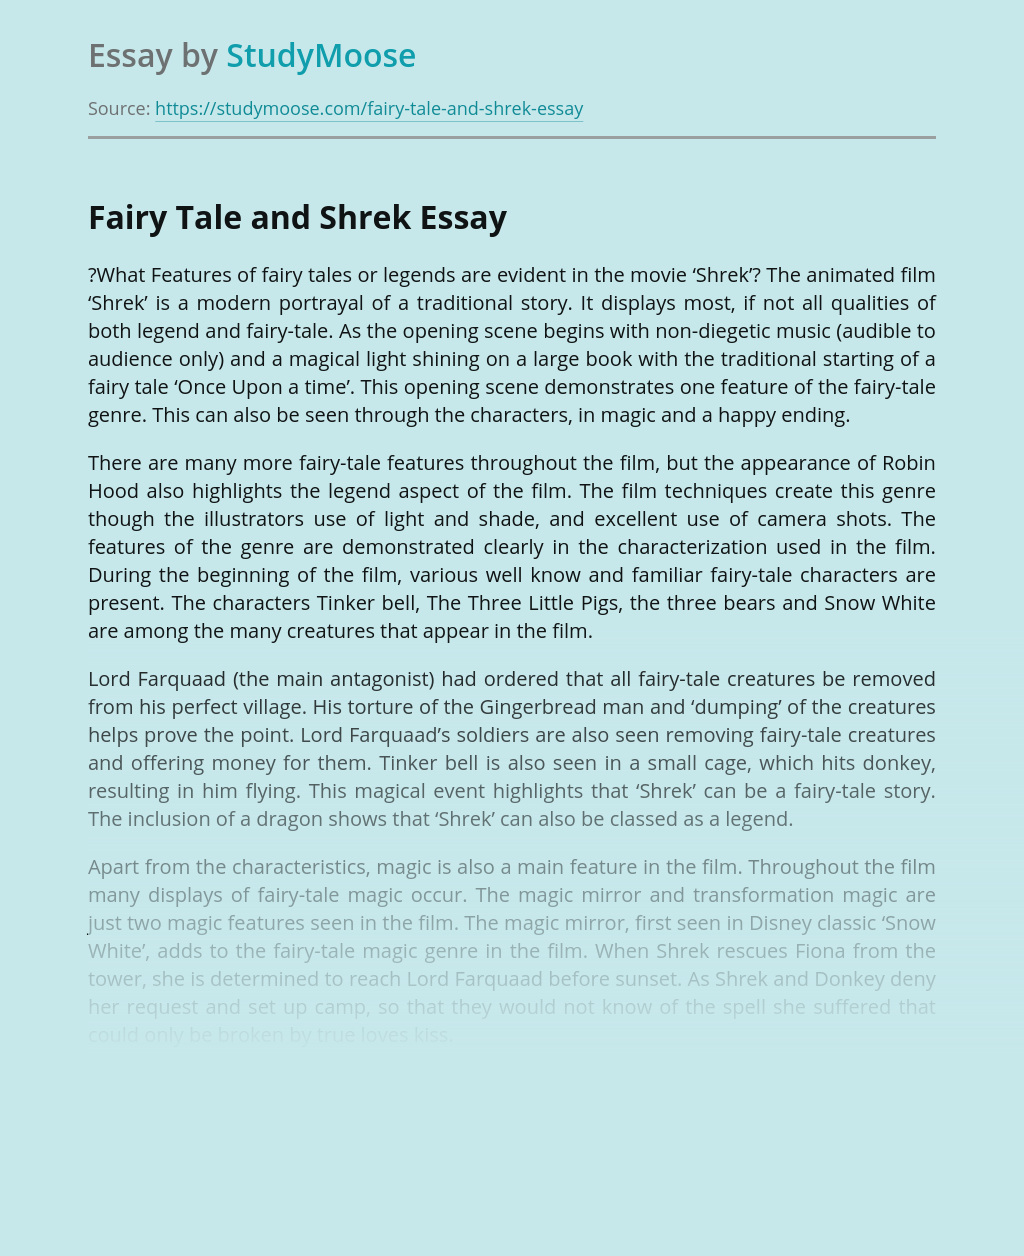 Fairy Tale as a Component of Movie Shrek